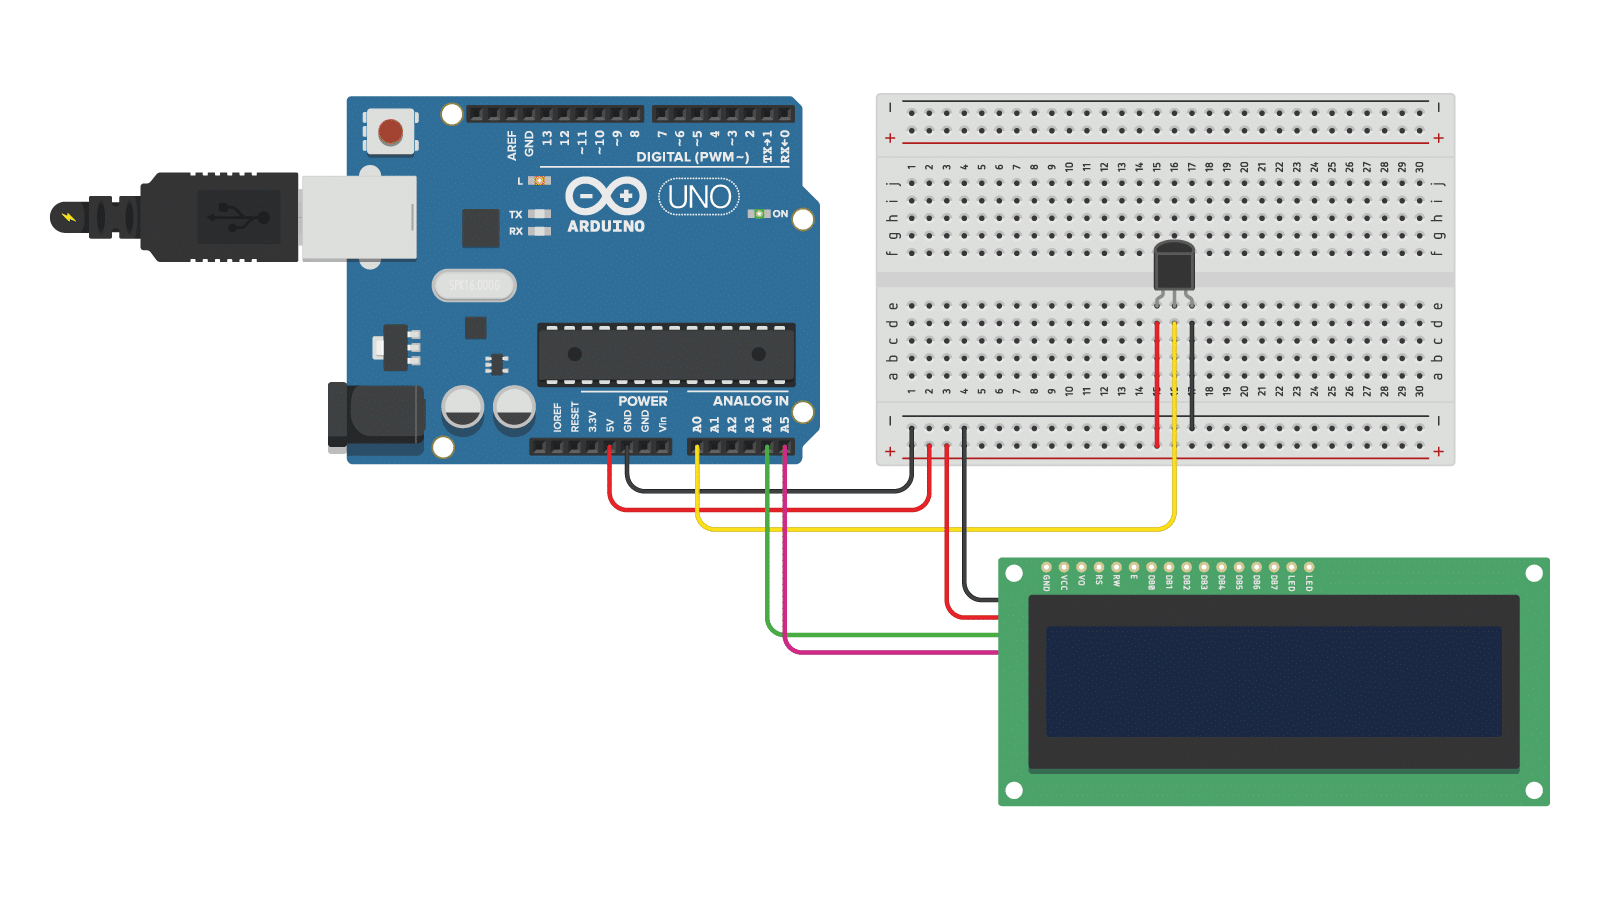 LM35 analog temperature sensor with 16x2 character I2C LCD and Arduino wiring diagram.